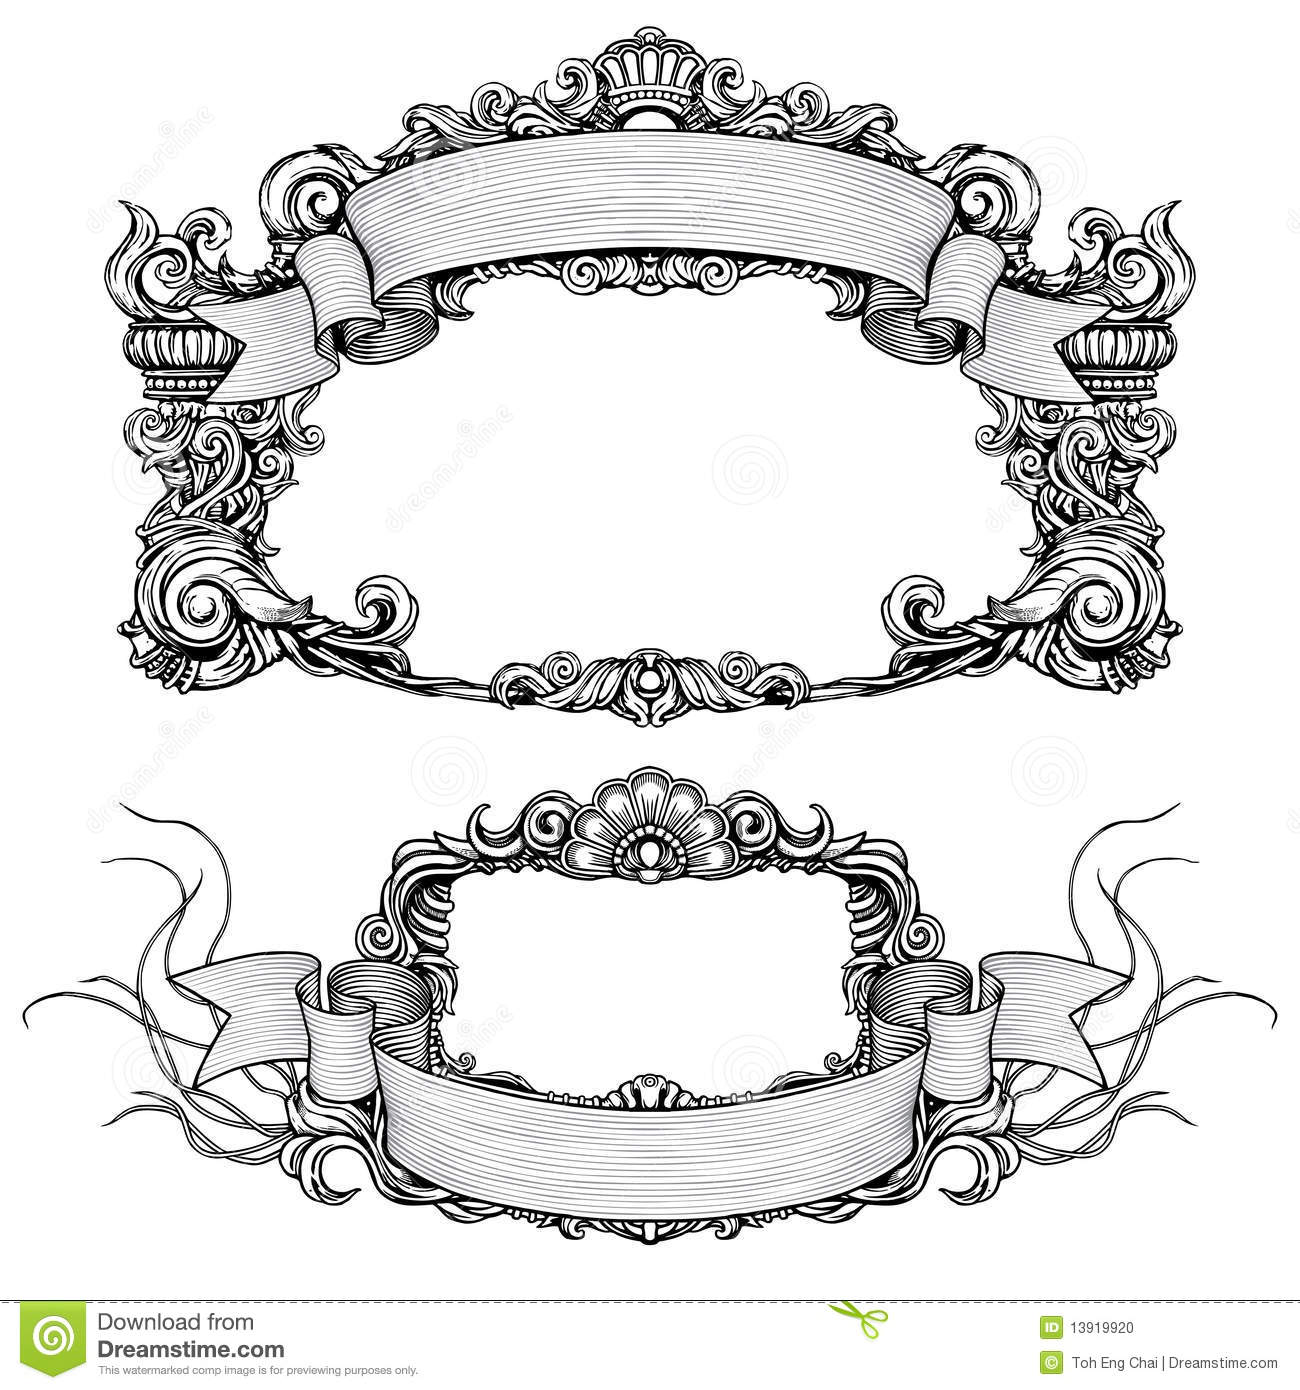 Antique Scrollimgs: Vintage Ornate Frames With Scroll Stock Vector